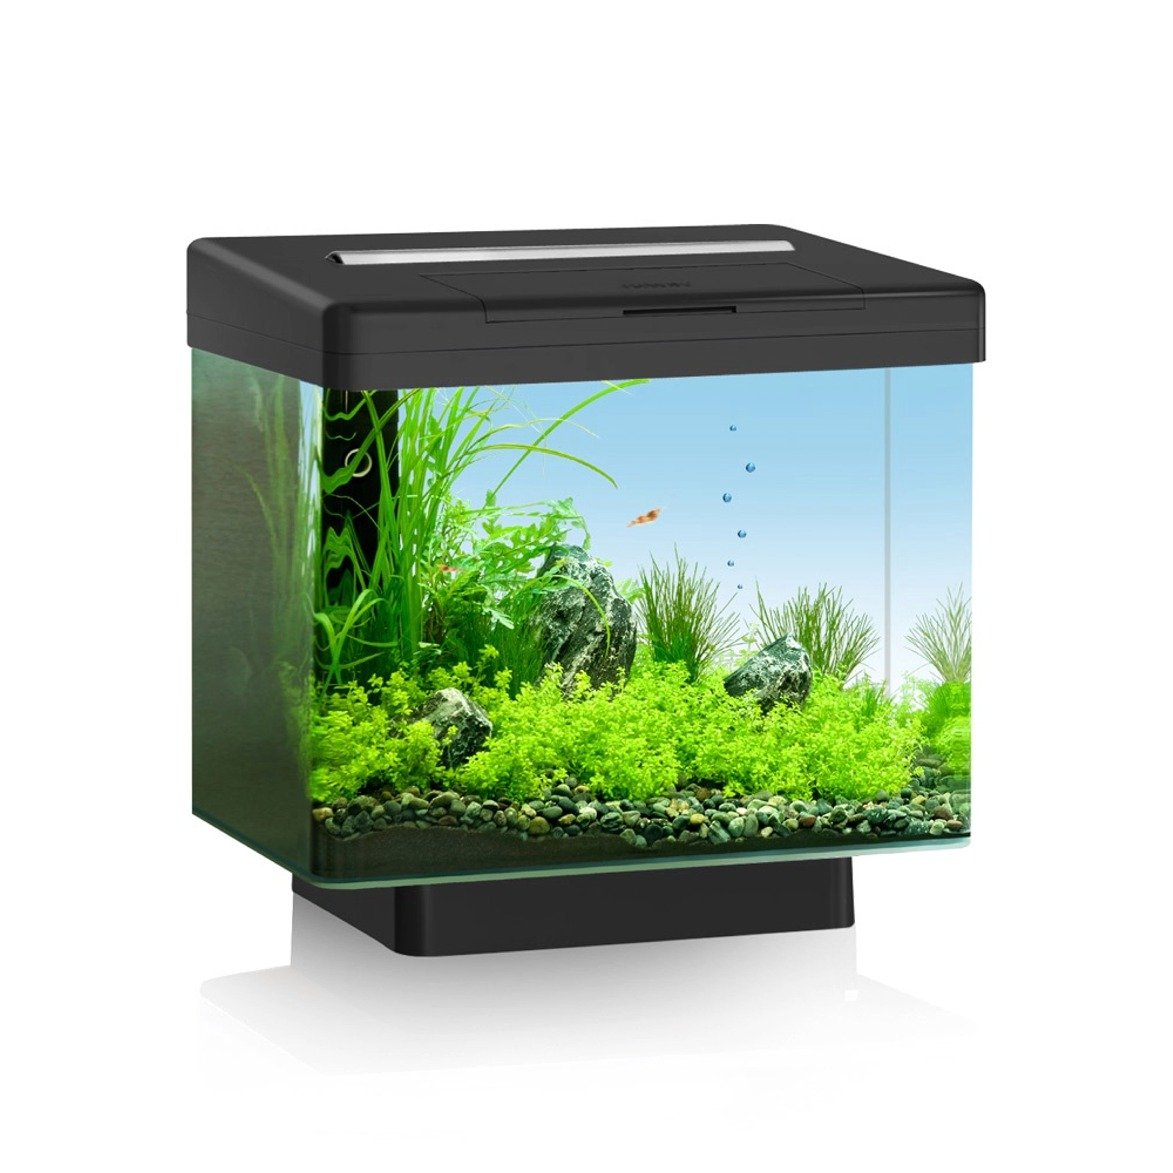 Nano aquarium juwel vio 40 de 30l enti rement quip for Aquarium juwel